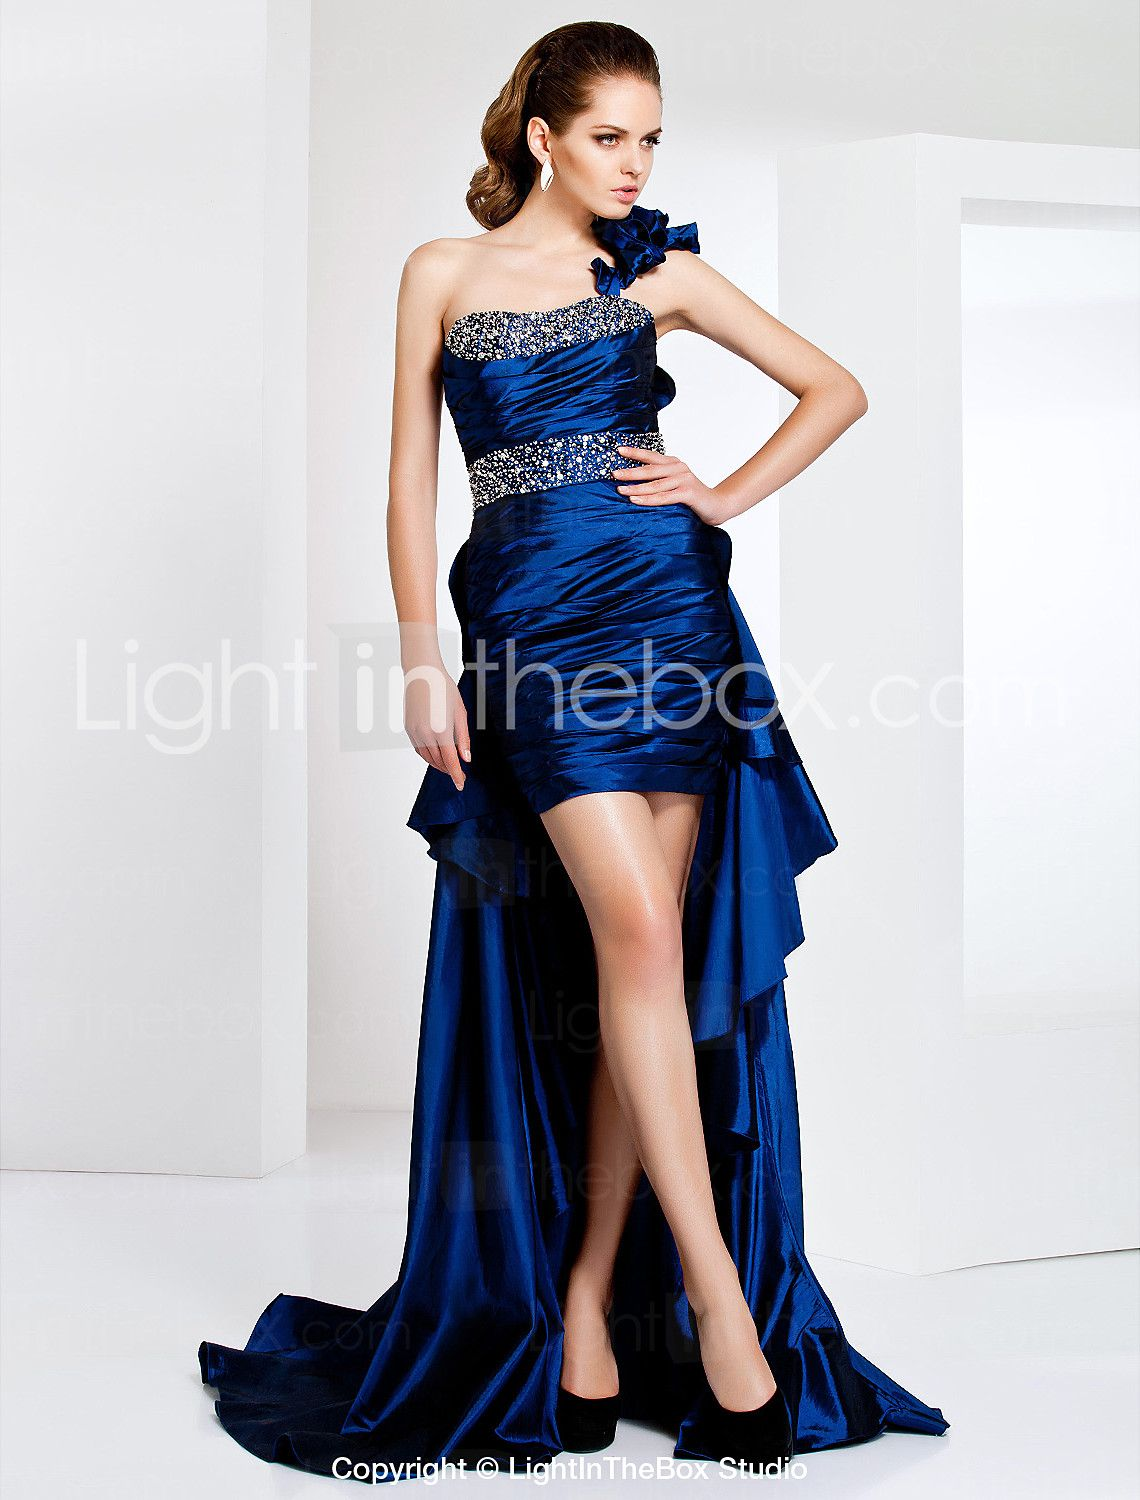 Ts couture cocktail party formal evening dress sexy high low